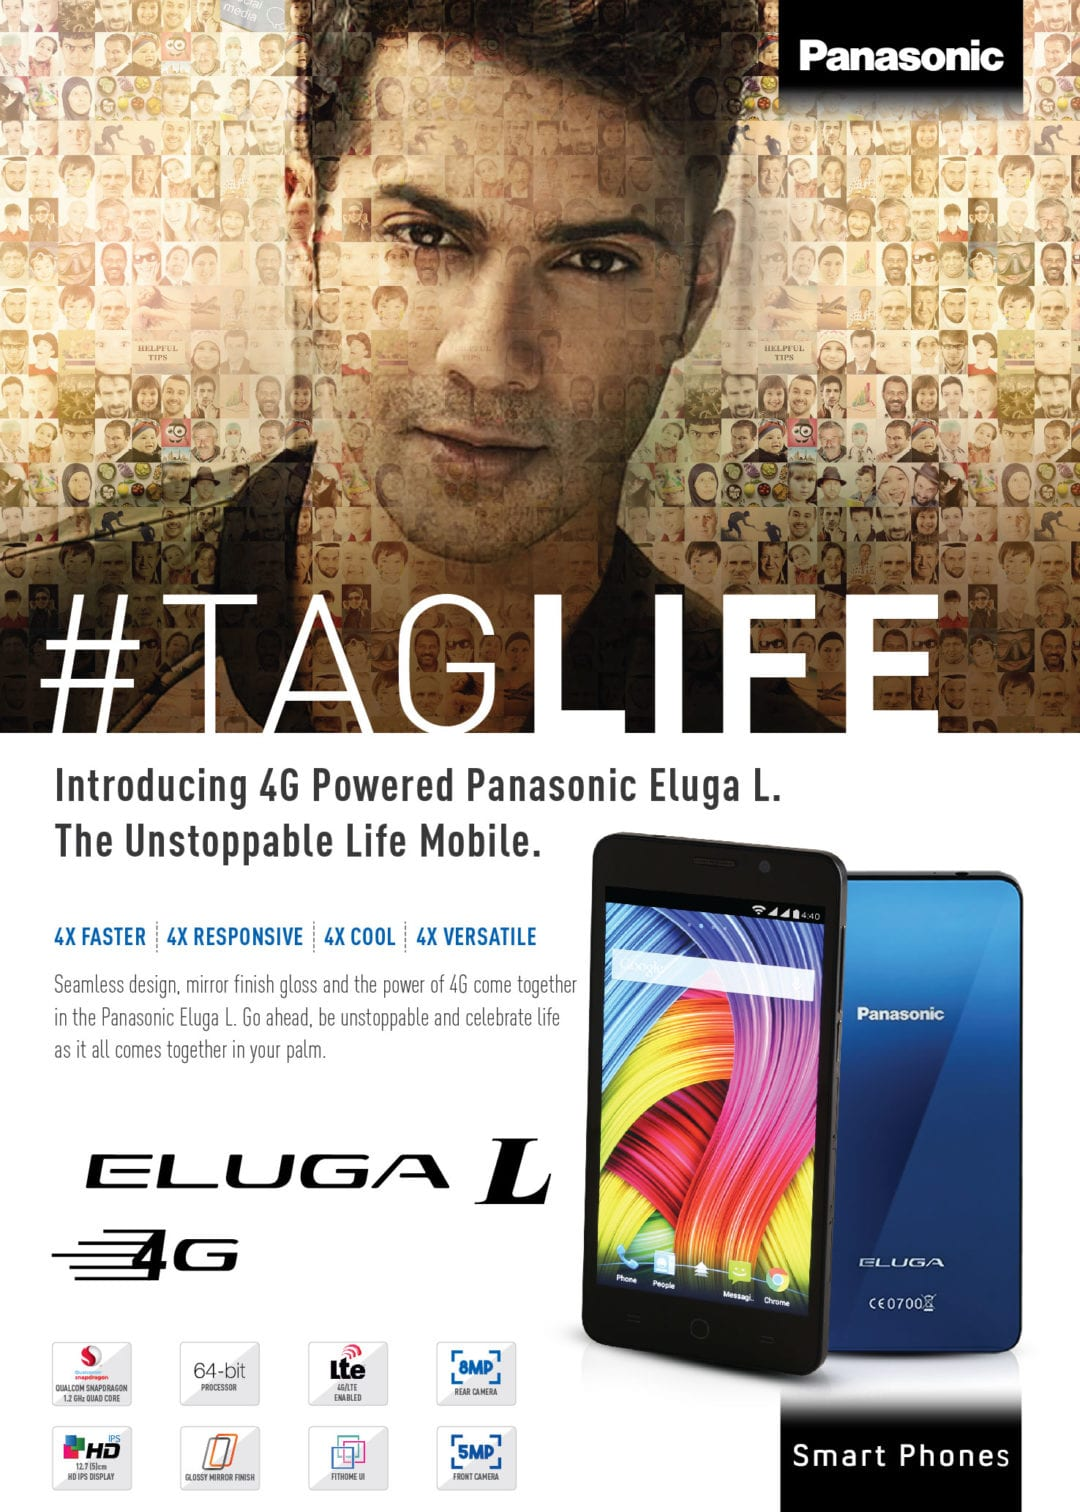 Launches ELUGA L 4G at an attractive offer price of Rs. 12,990